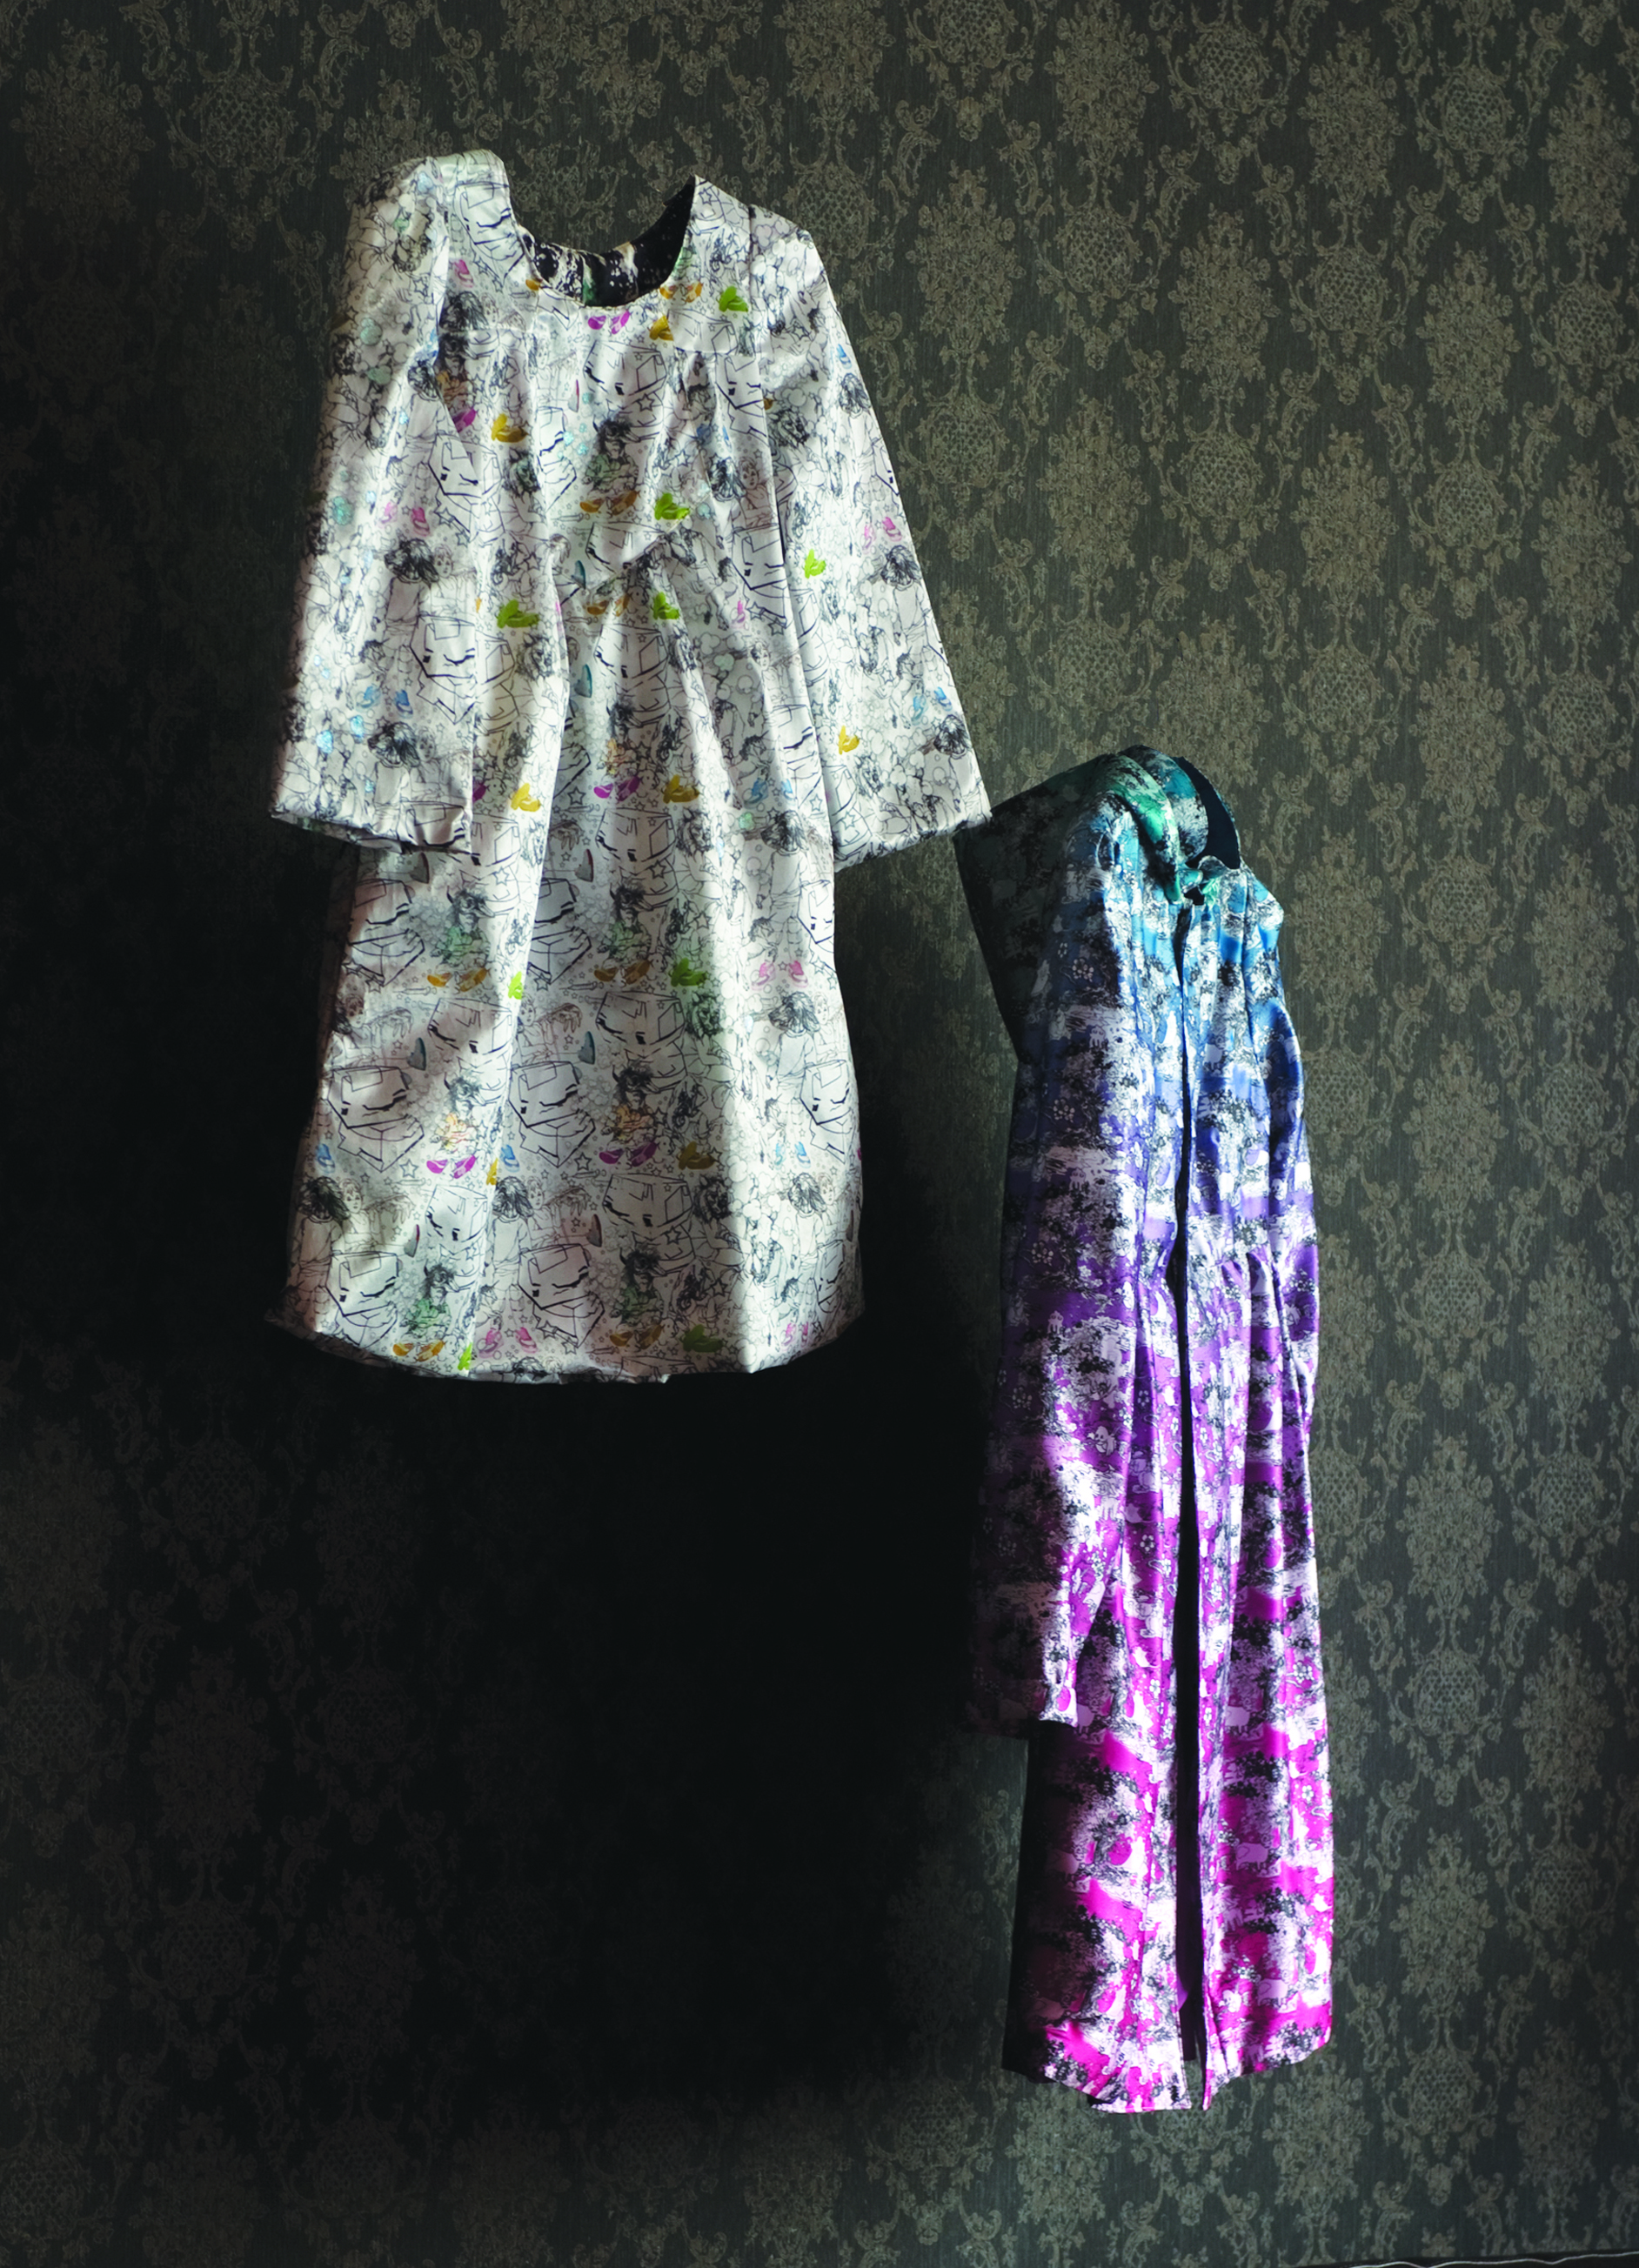 (left) 'Concrete Playground', (right) 'Ombre Outlook', Digitally printed, hand embroidered and painted satin, all unique originals, 2006.